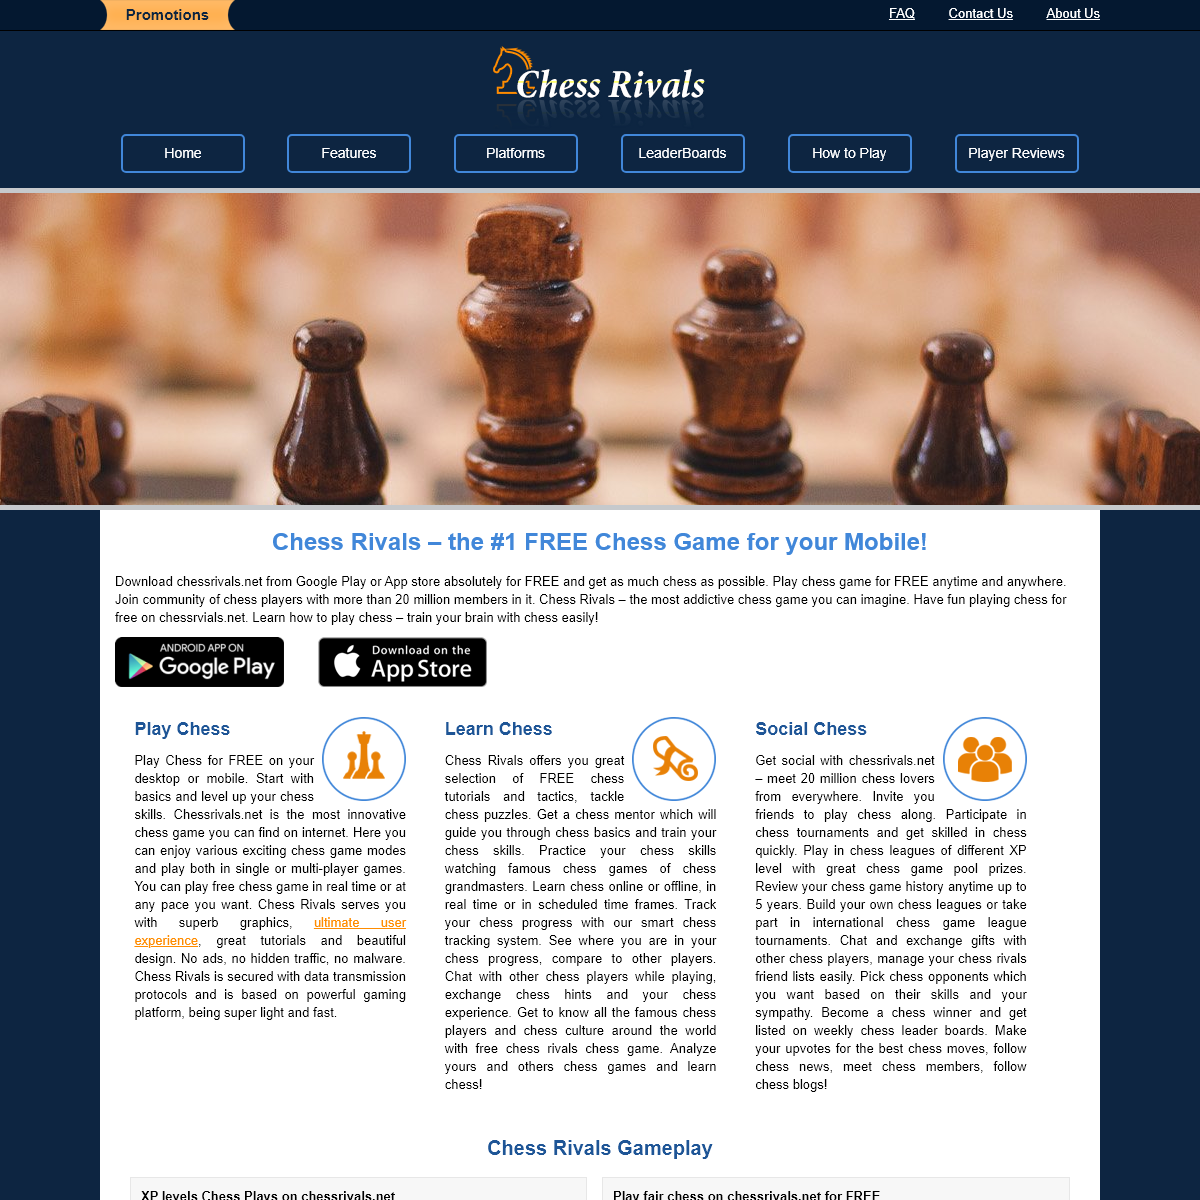 The #1 FREE Chess Game for your Mobile - ChessRivals.net